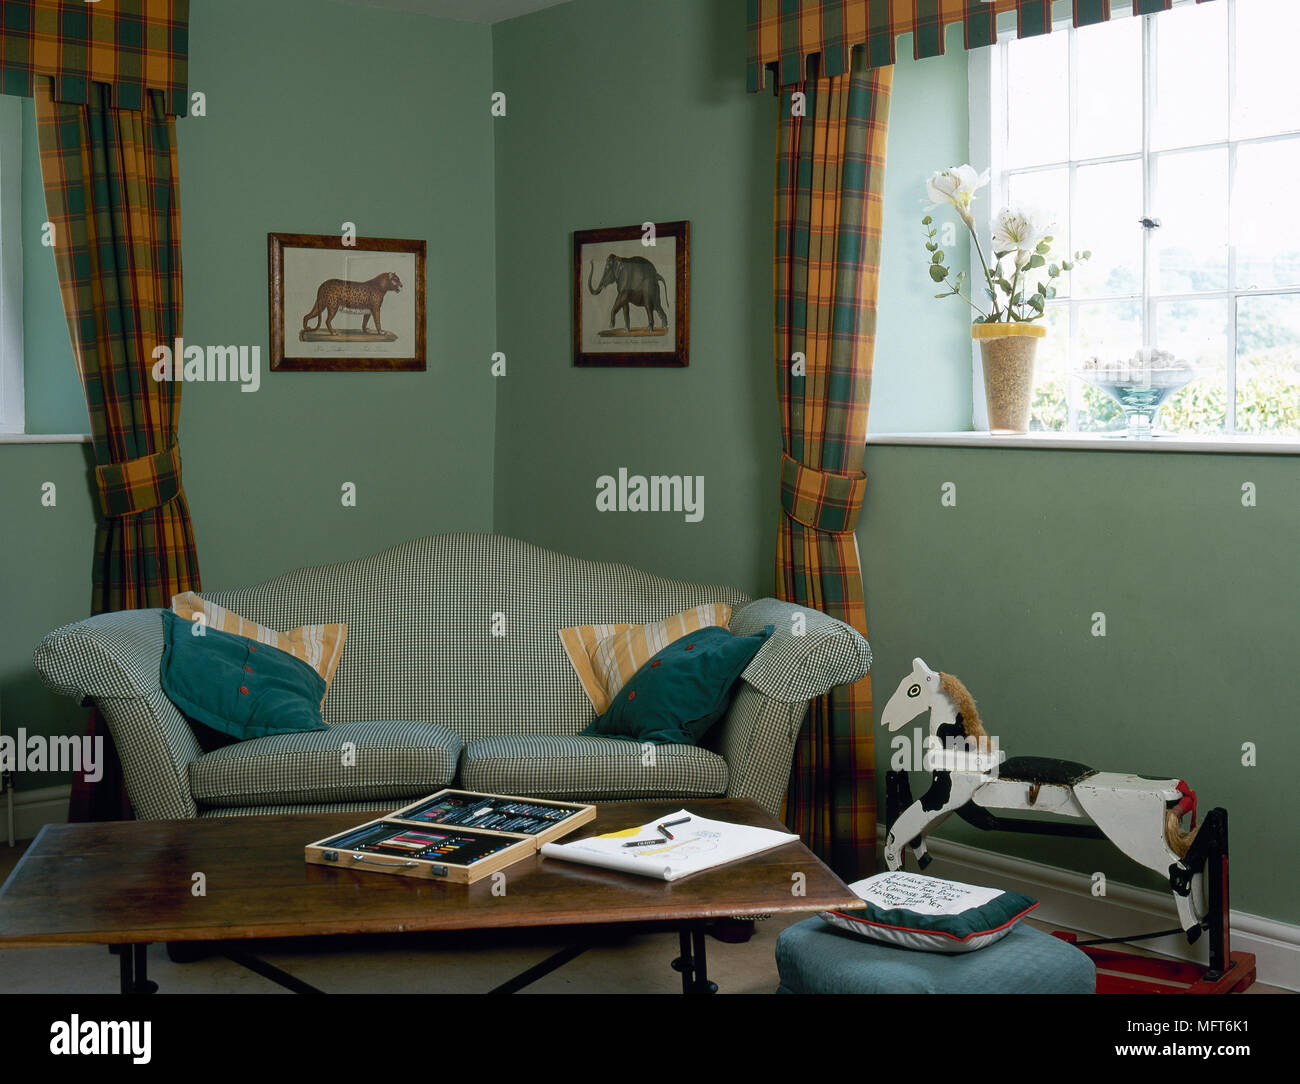 Country sitting room with green painted walls plaid window treatments sofa coffee table and antique rocking horse interiors rooms window treat